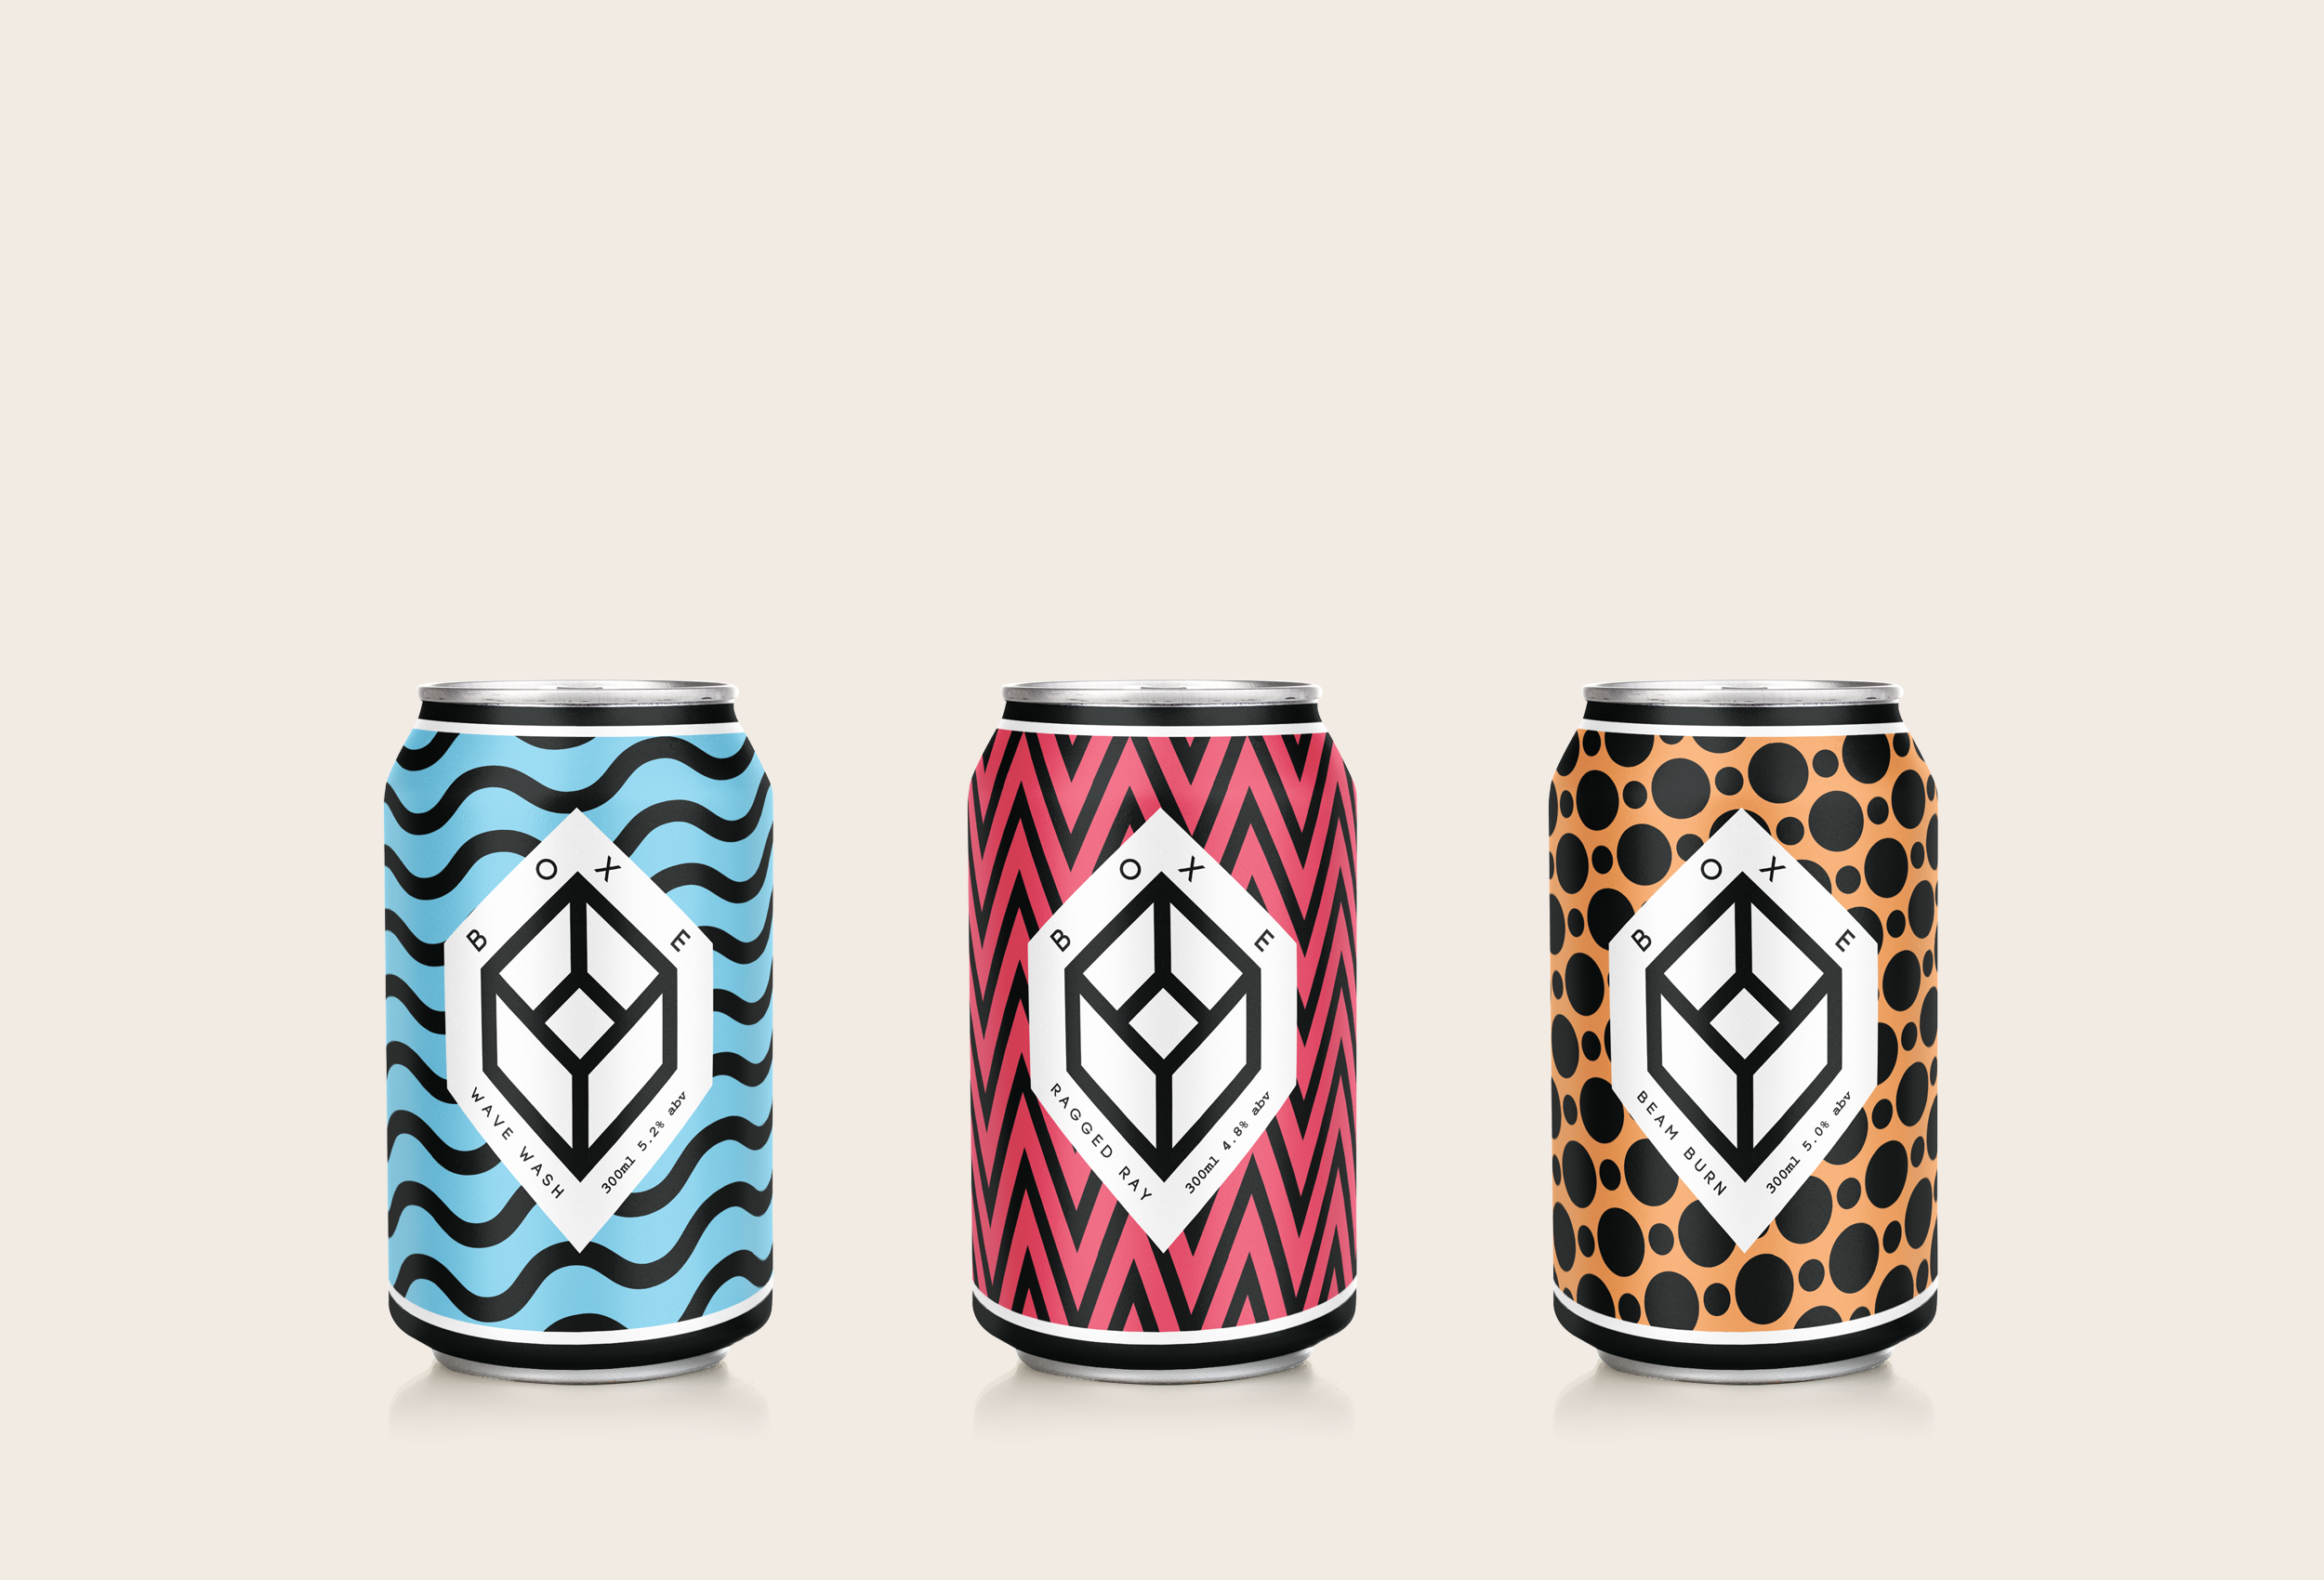 Boxe Beer can packaging designs.